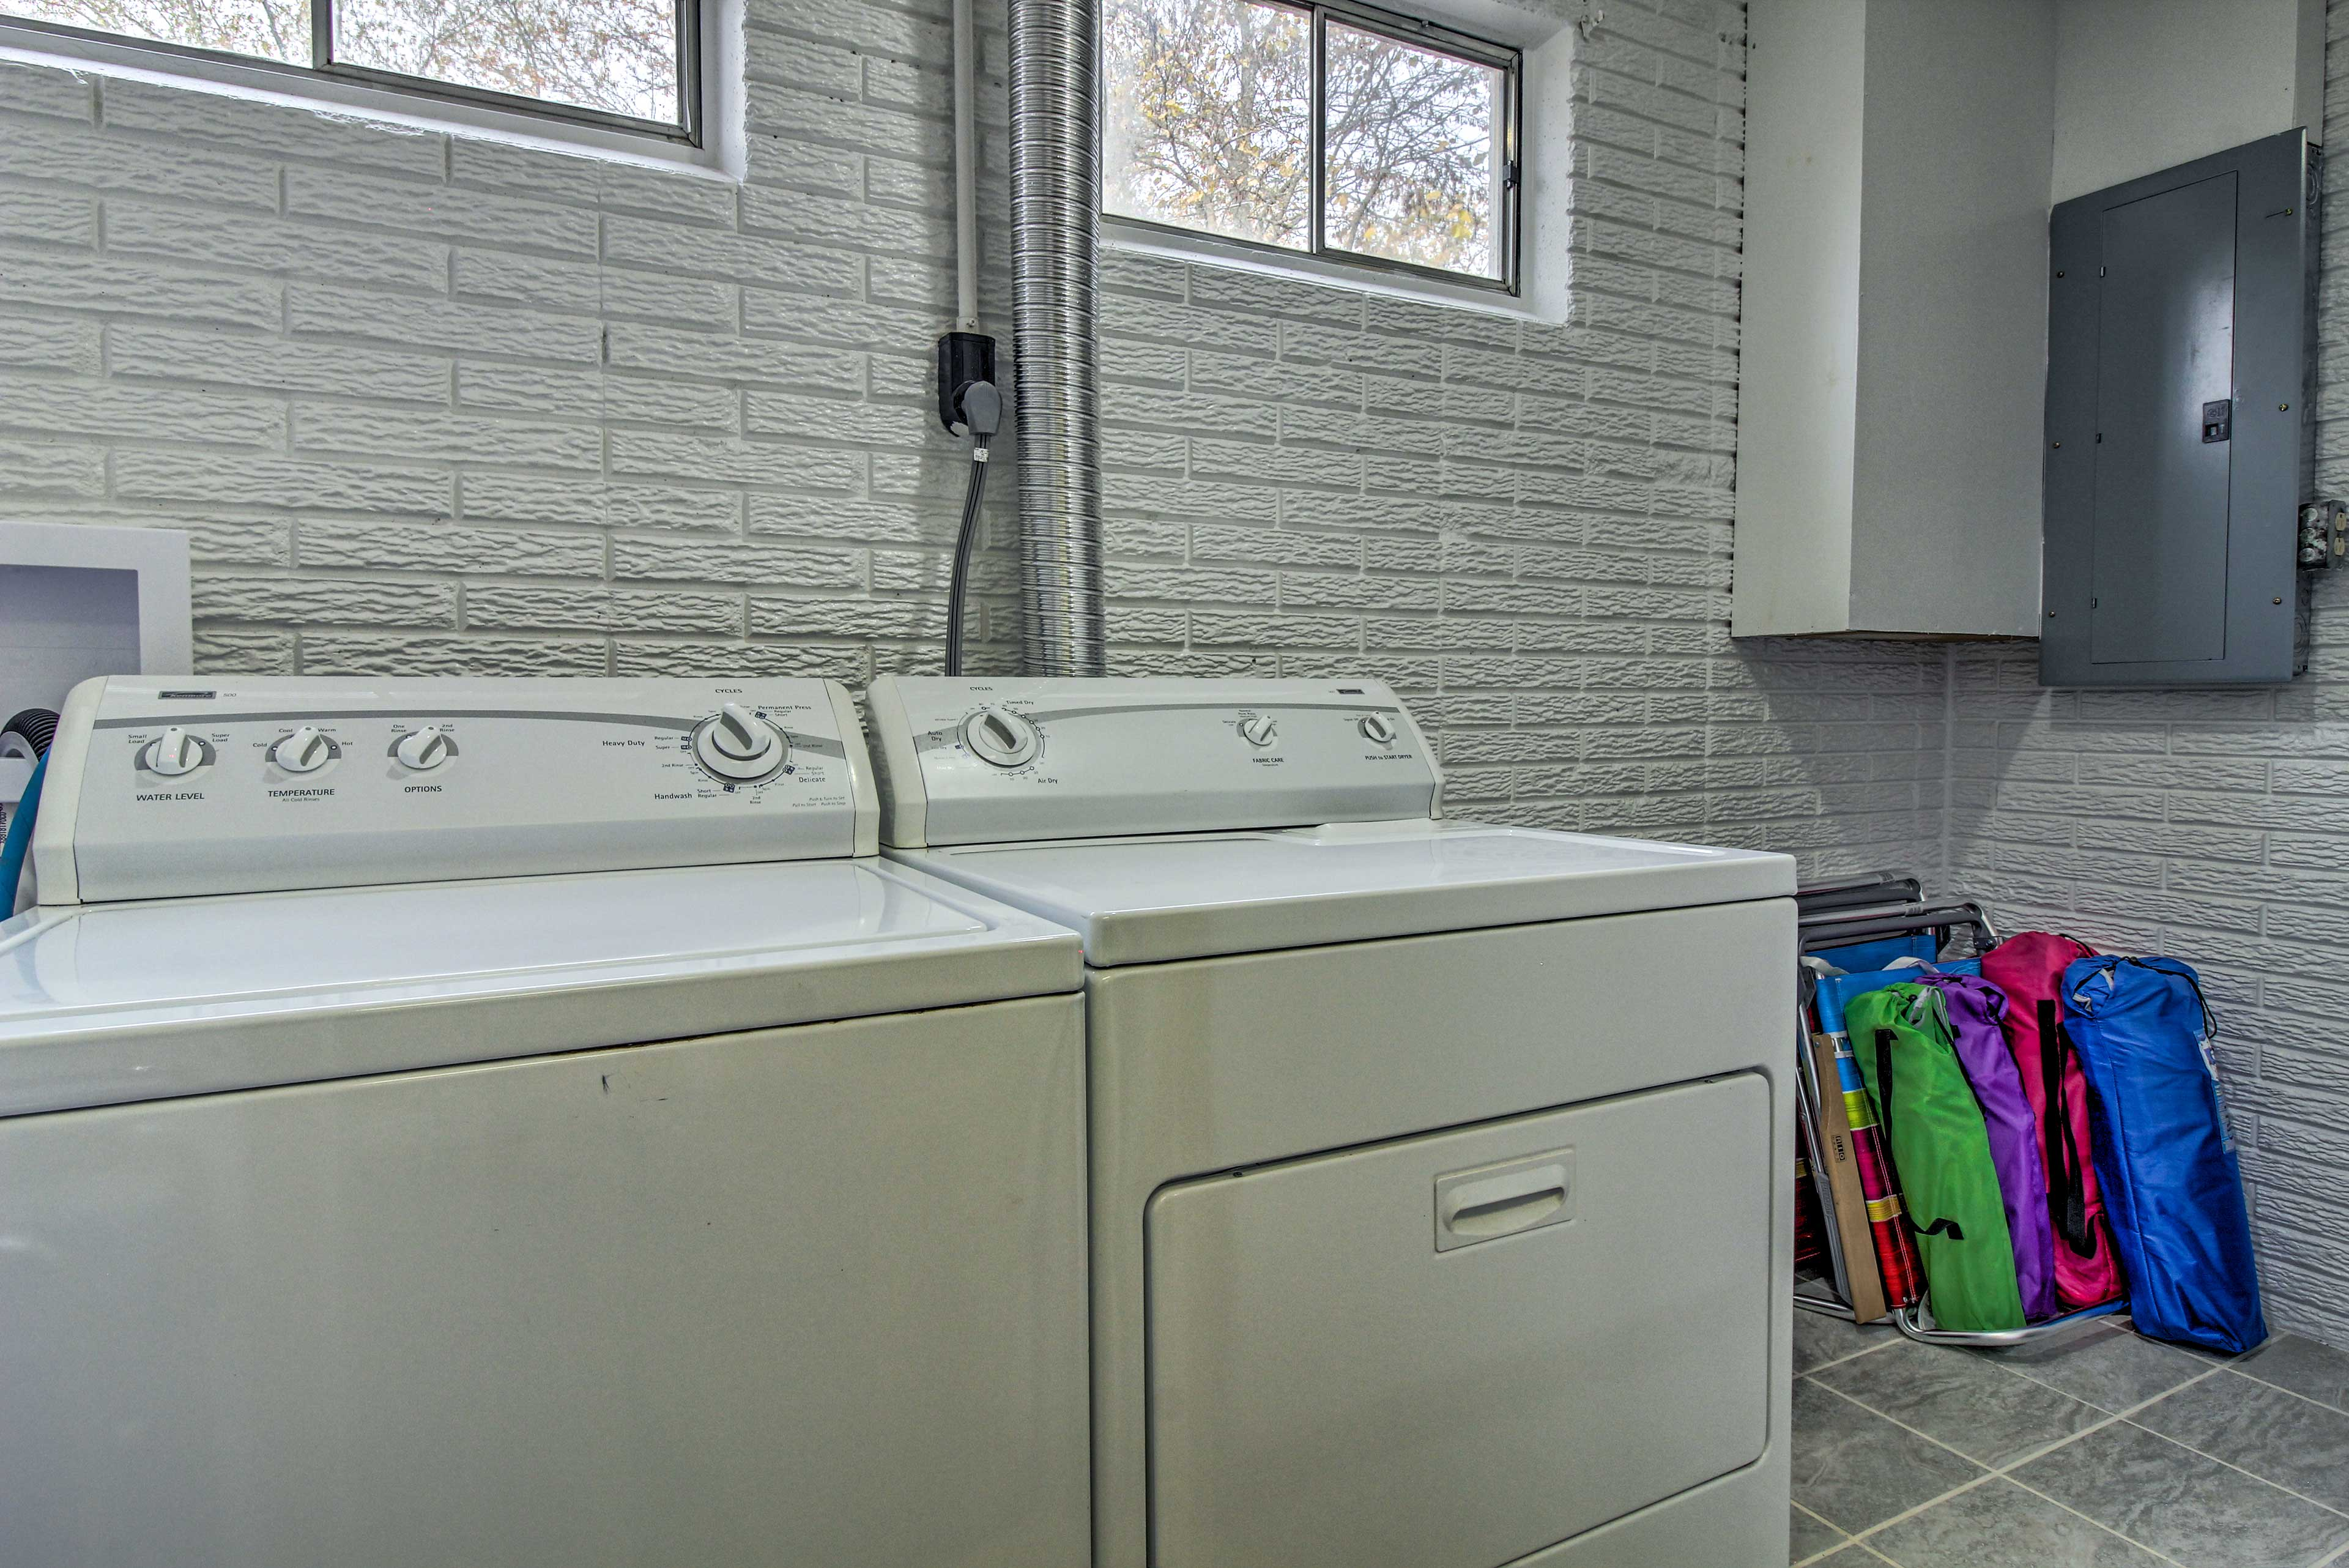 Keep your clothes fresh and dry with the laundry machines.